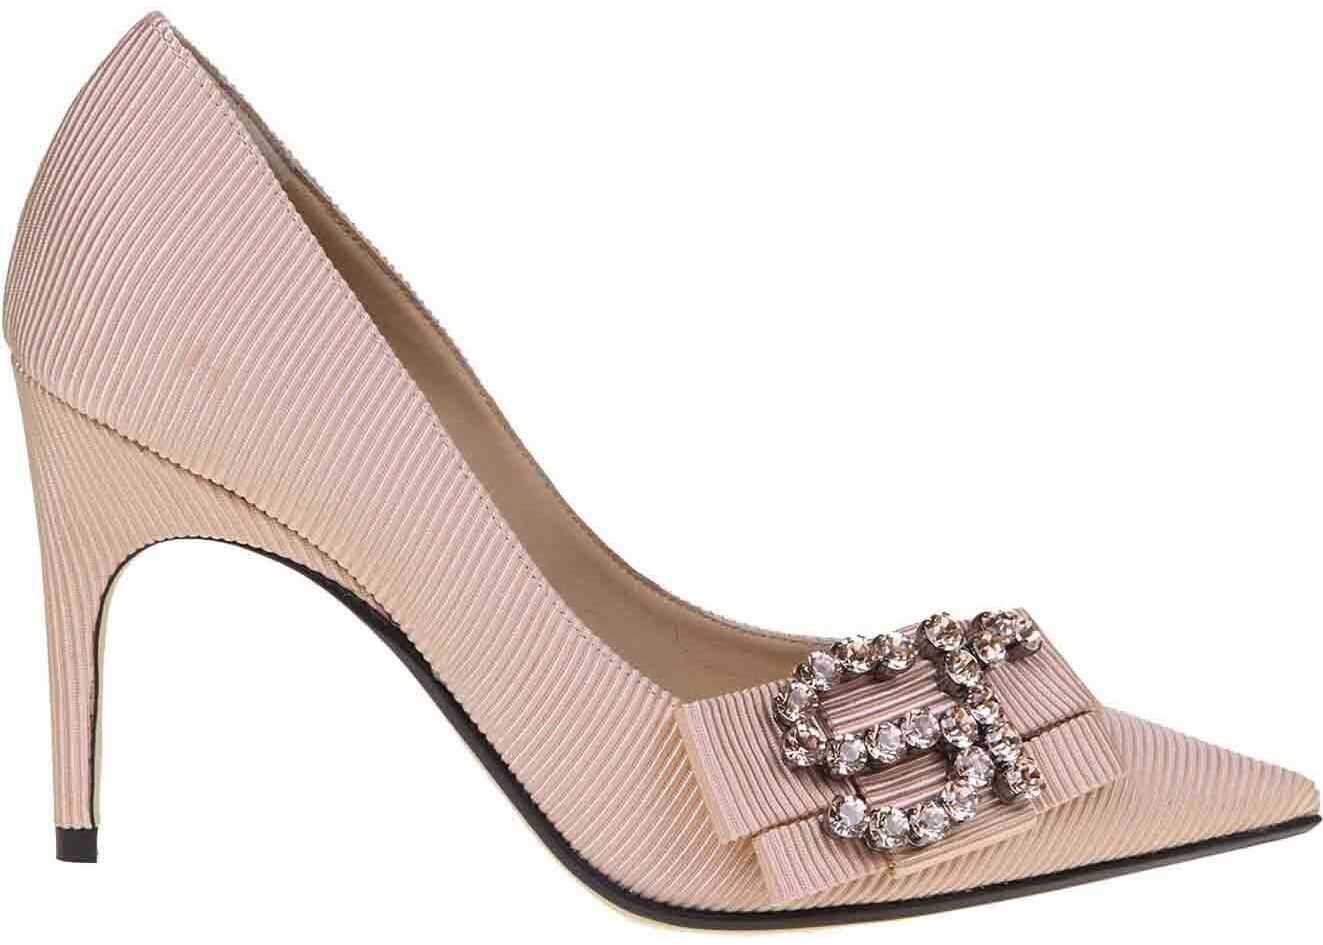 Sergio Rossi Draped Pumps In Pink Fabric Pink